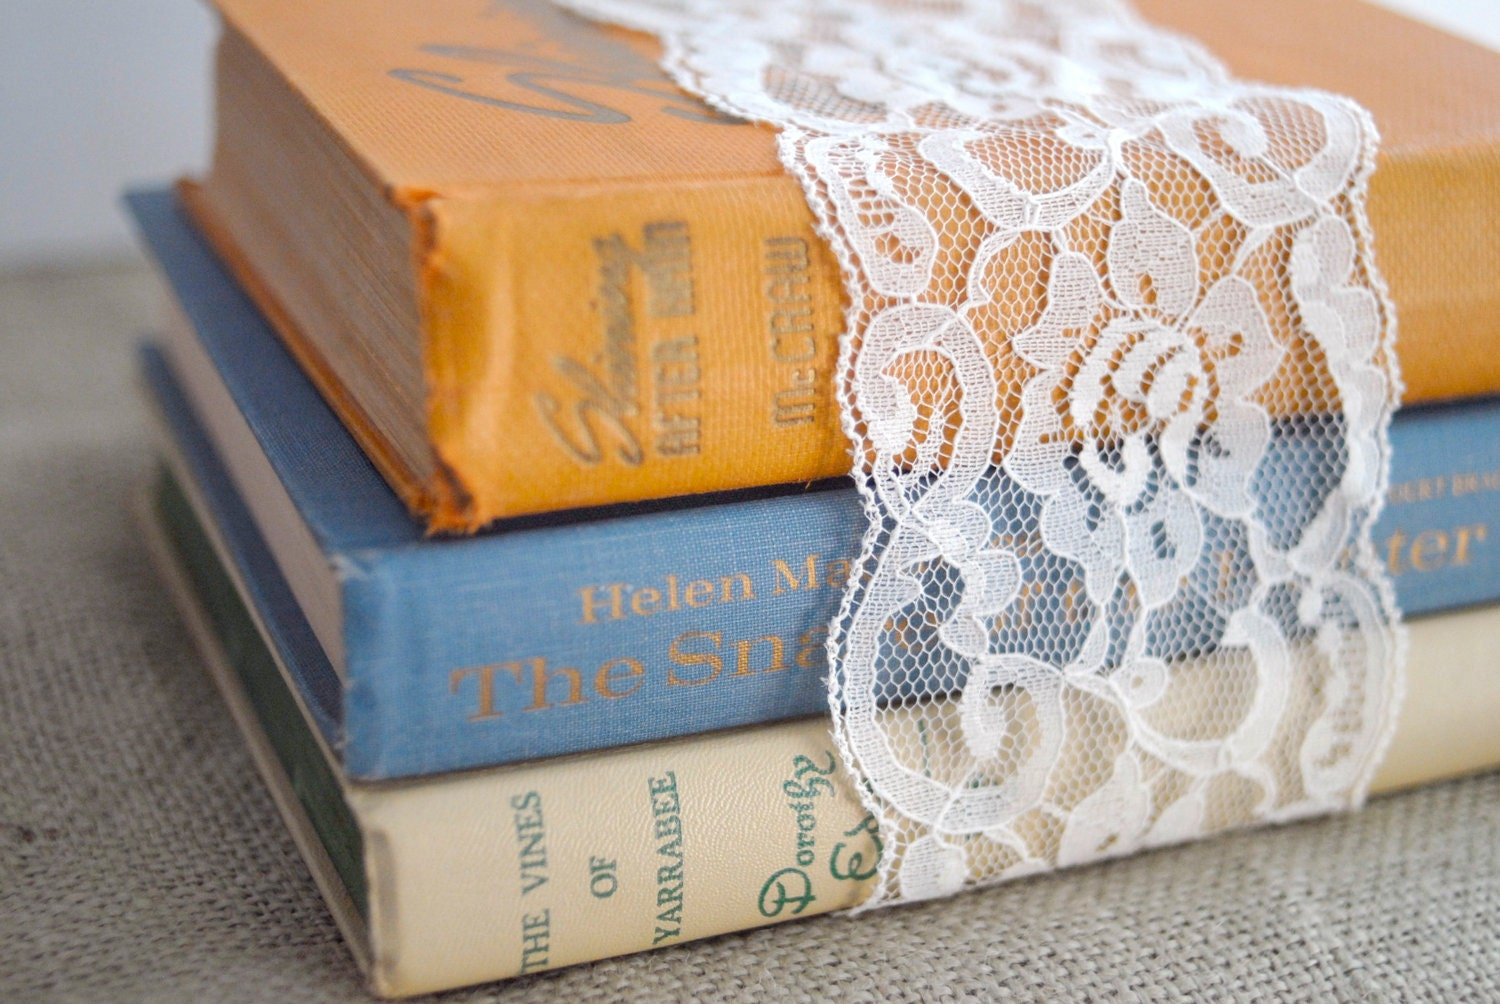 Vintage Book Set in Soft Rustic Colors